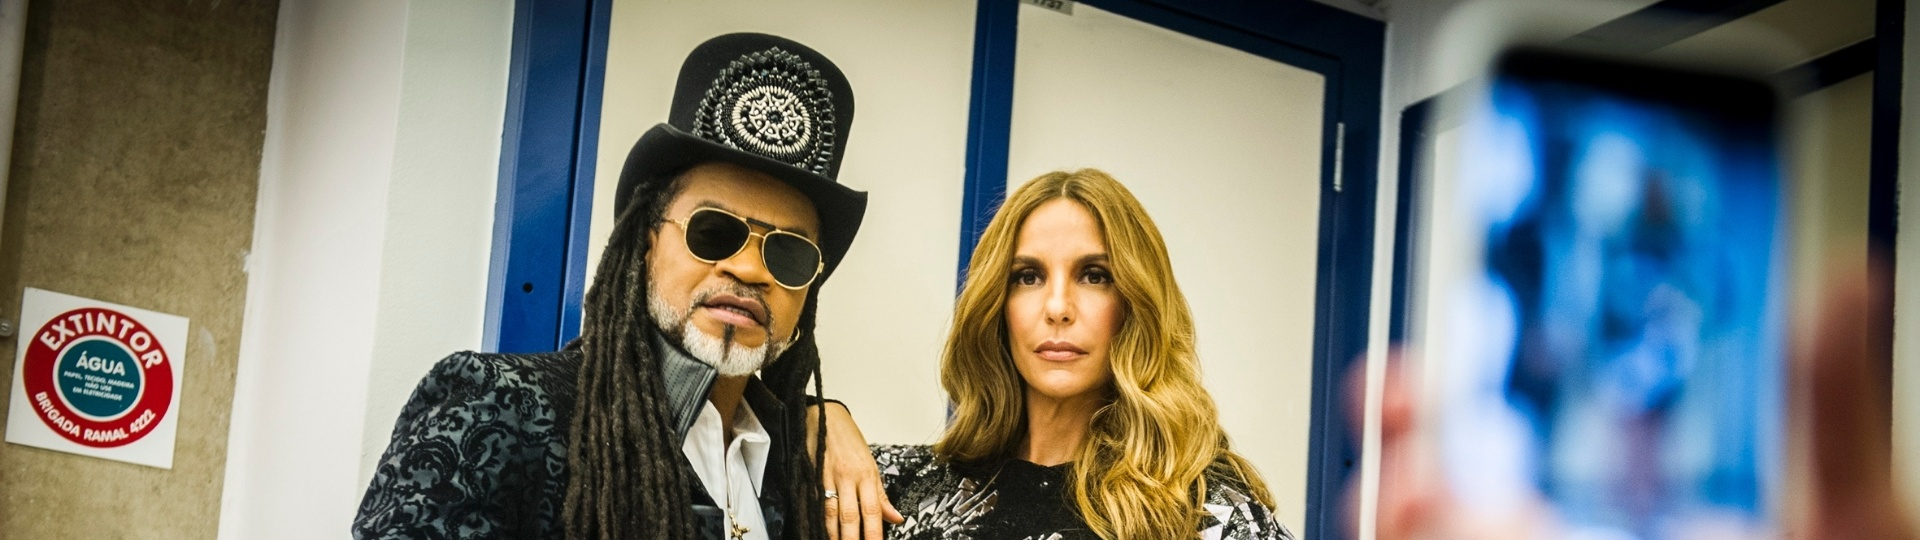 Ivete Sangalo e Carlinhos Brown no